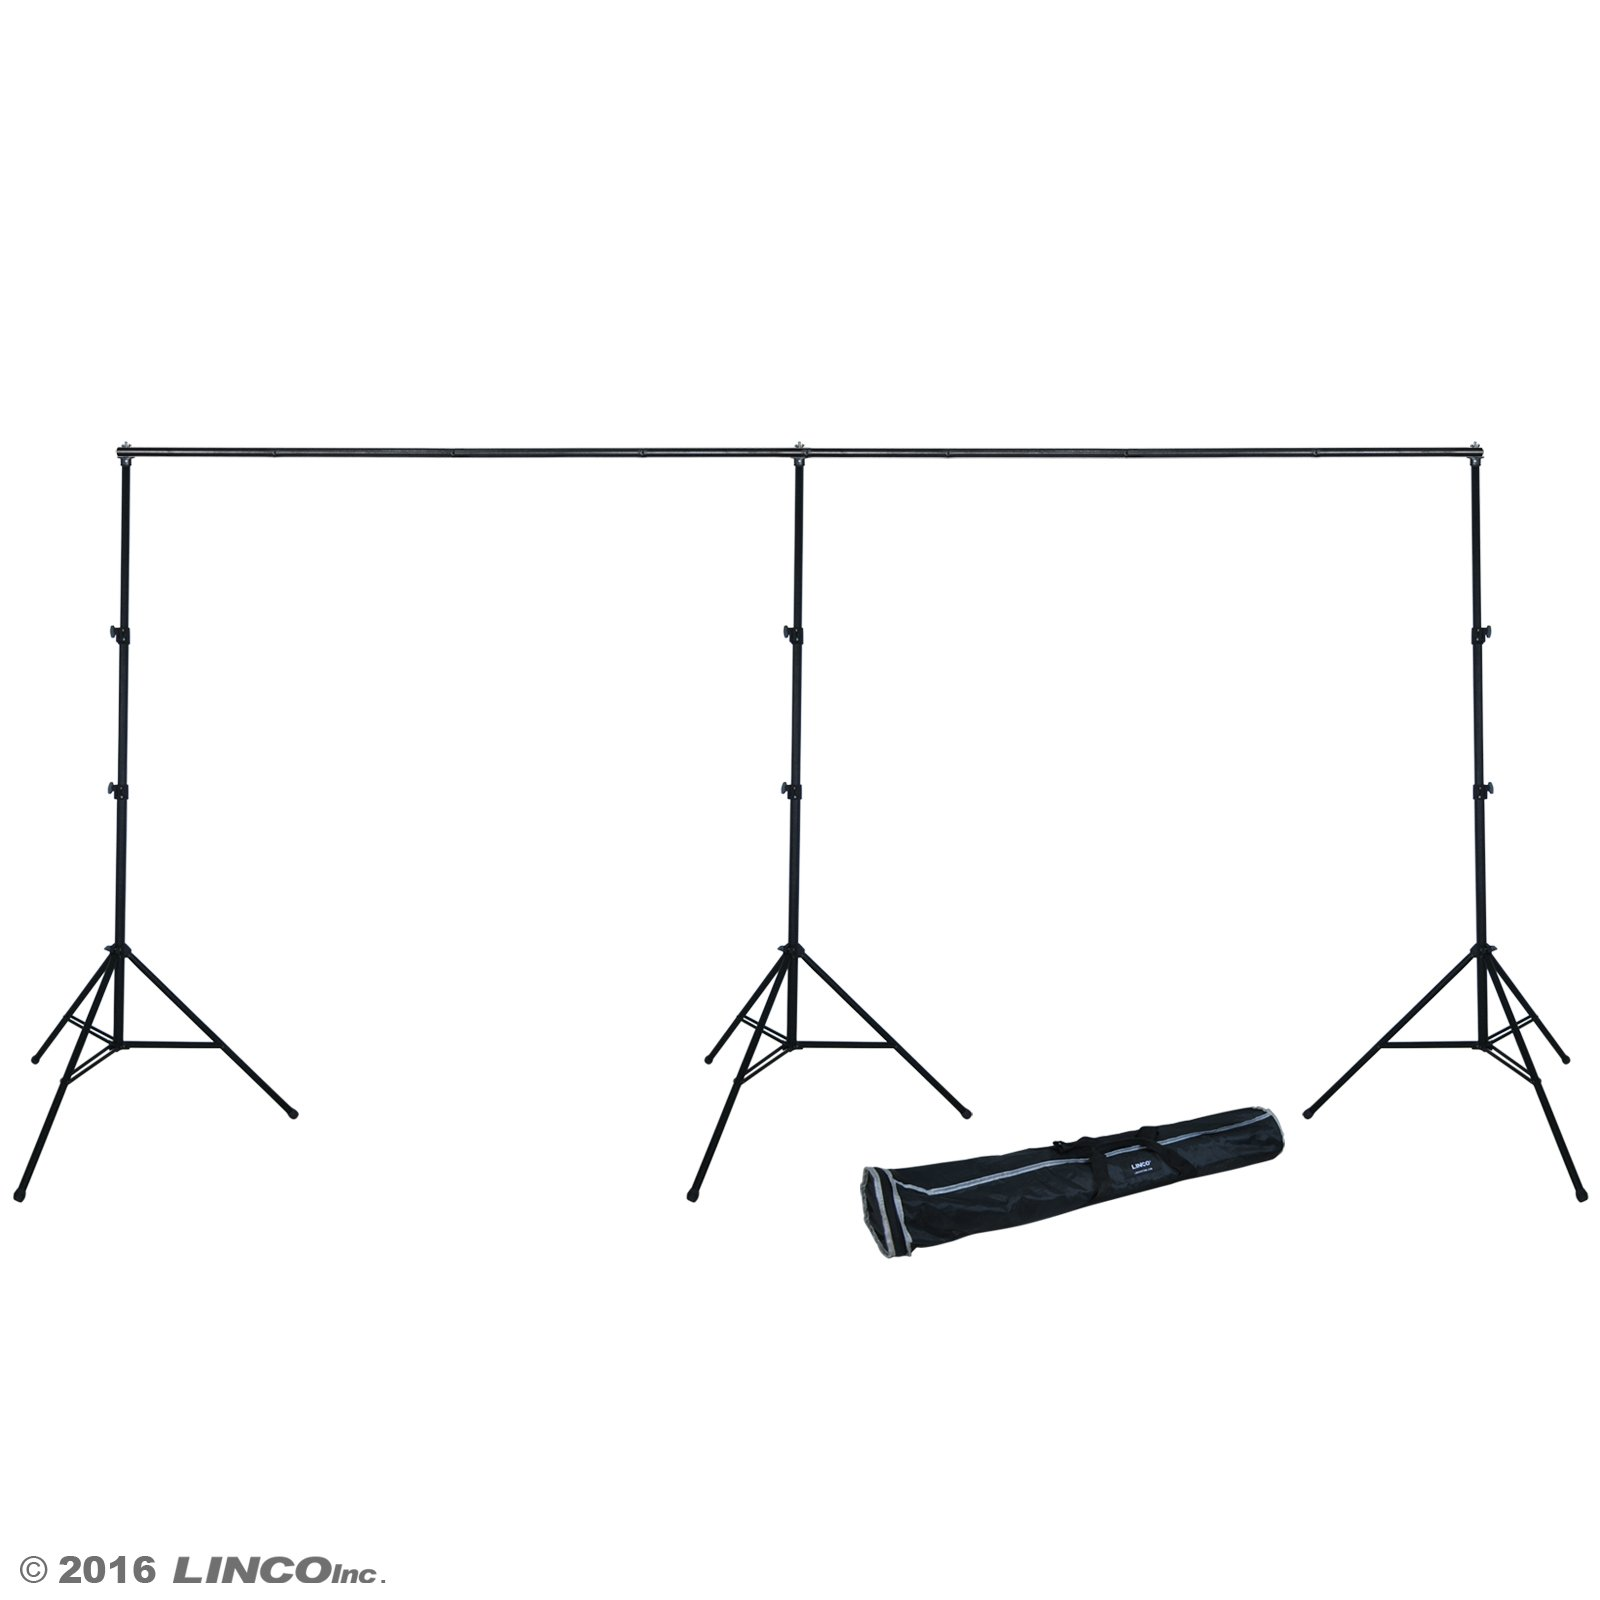 Linco Lincostore 9x20 feet Heavy Duty Photography Backdrop Stand Background Support System Kit 4166